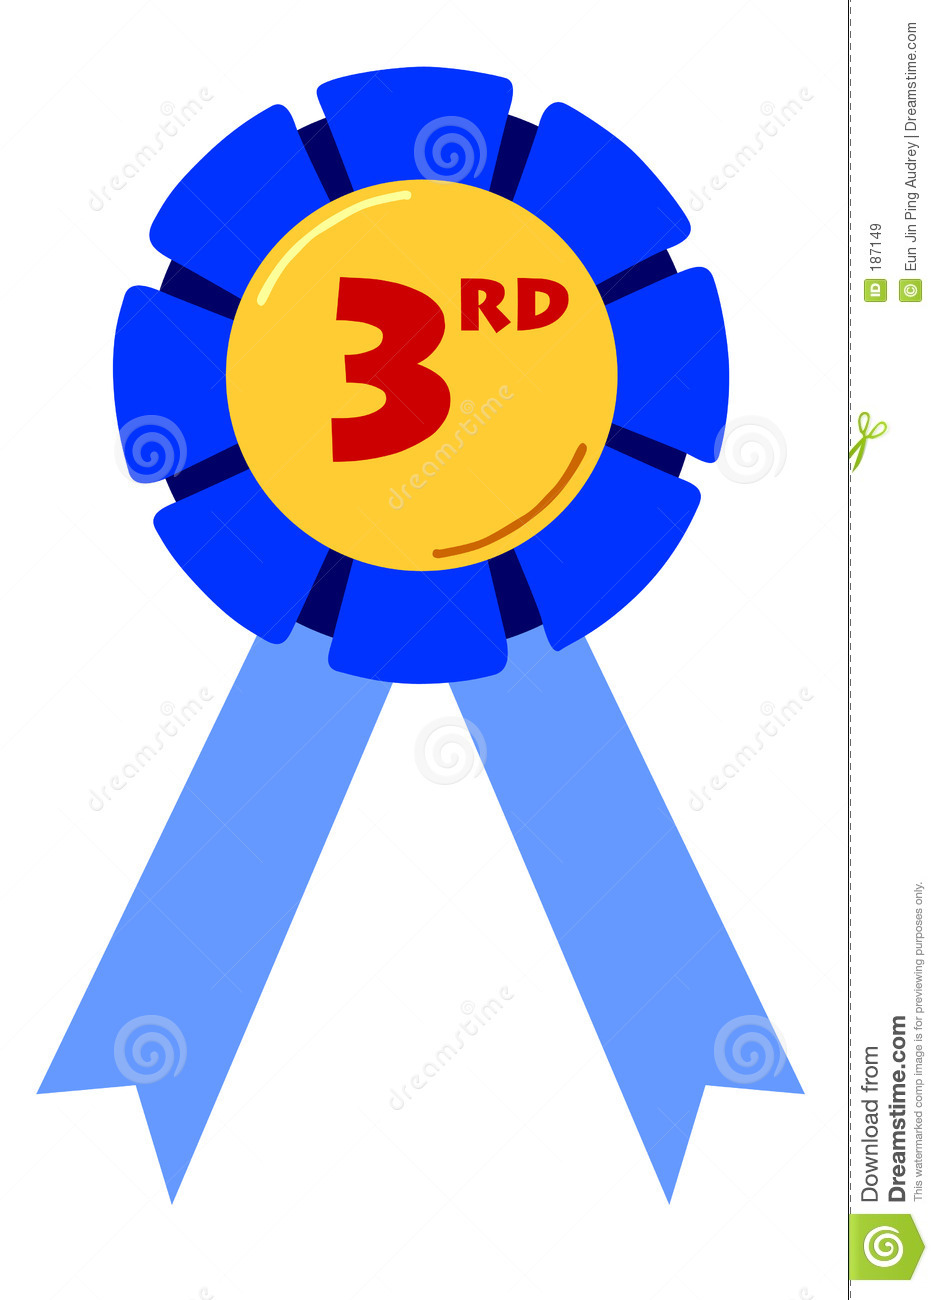 2nd place winner clipart free download Winner Clipart Free | Free download best Winner Clipart Free on ... free download